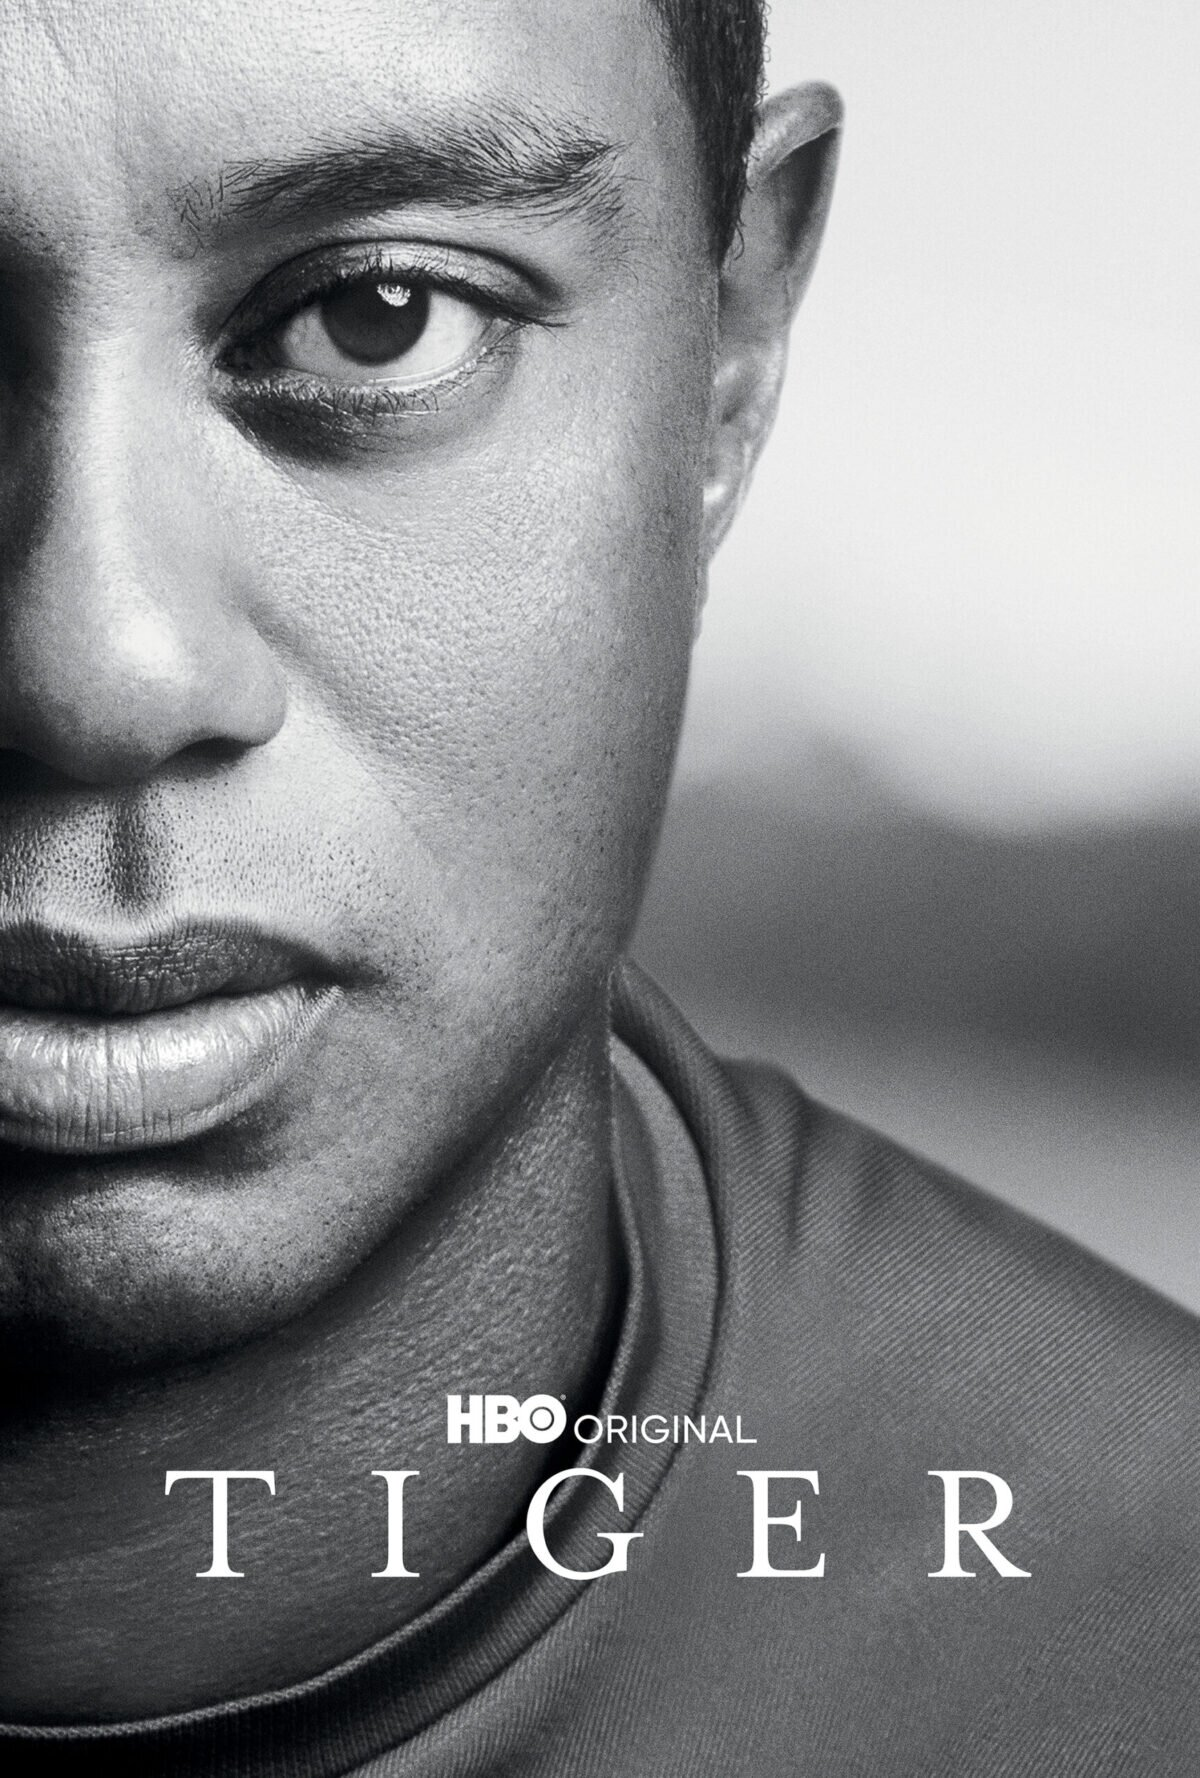 HBO estrena TIGER, el documental sobre la vida de Tiger Woods - Tengolf